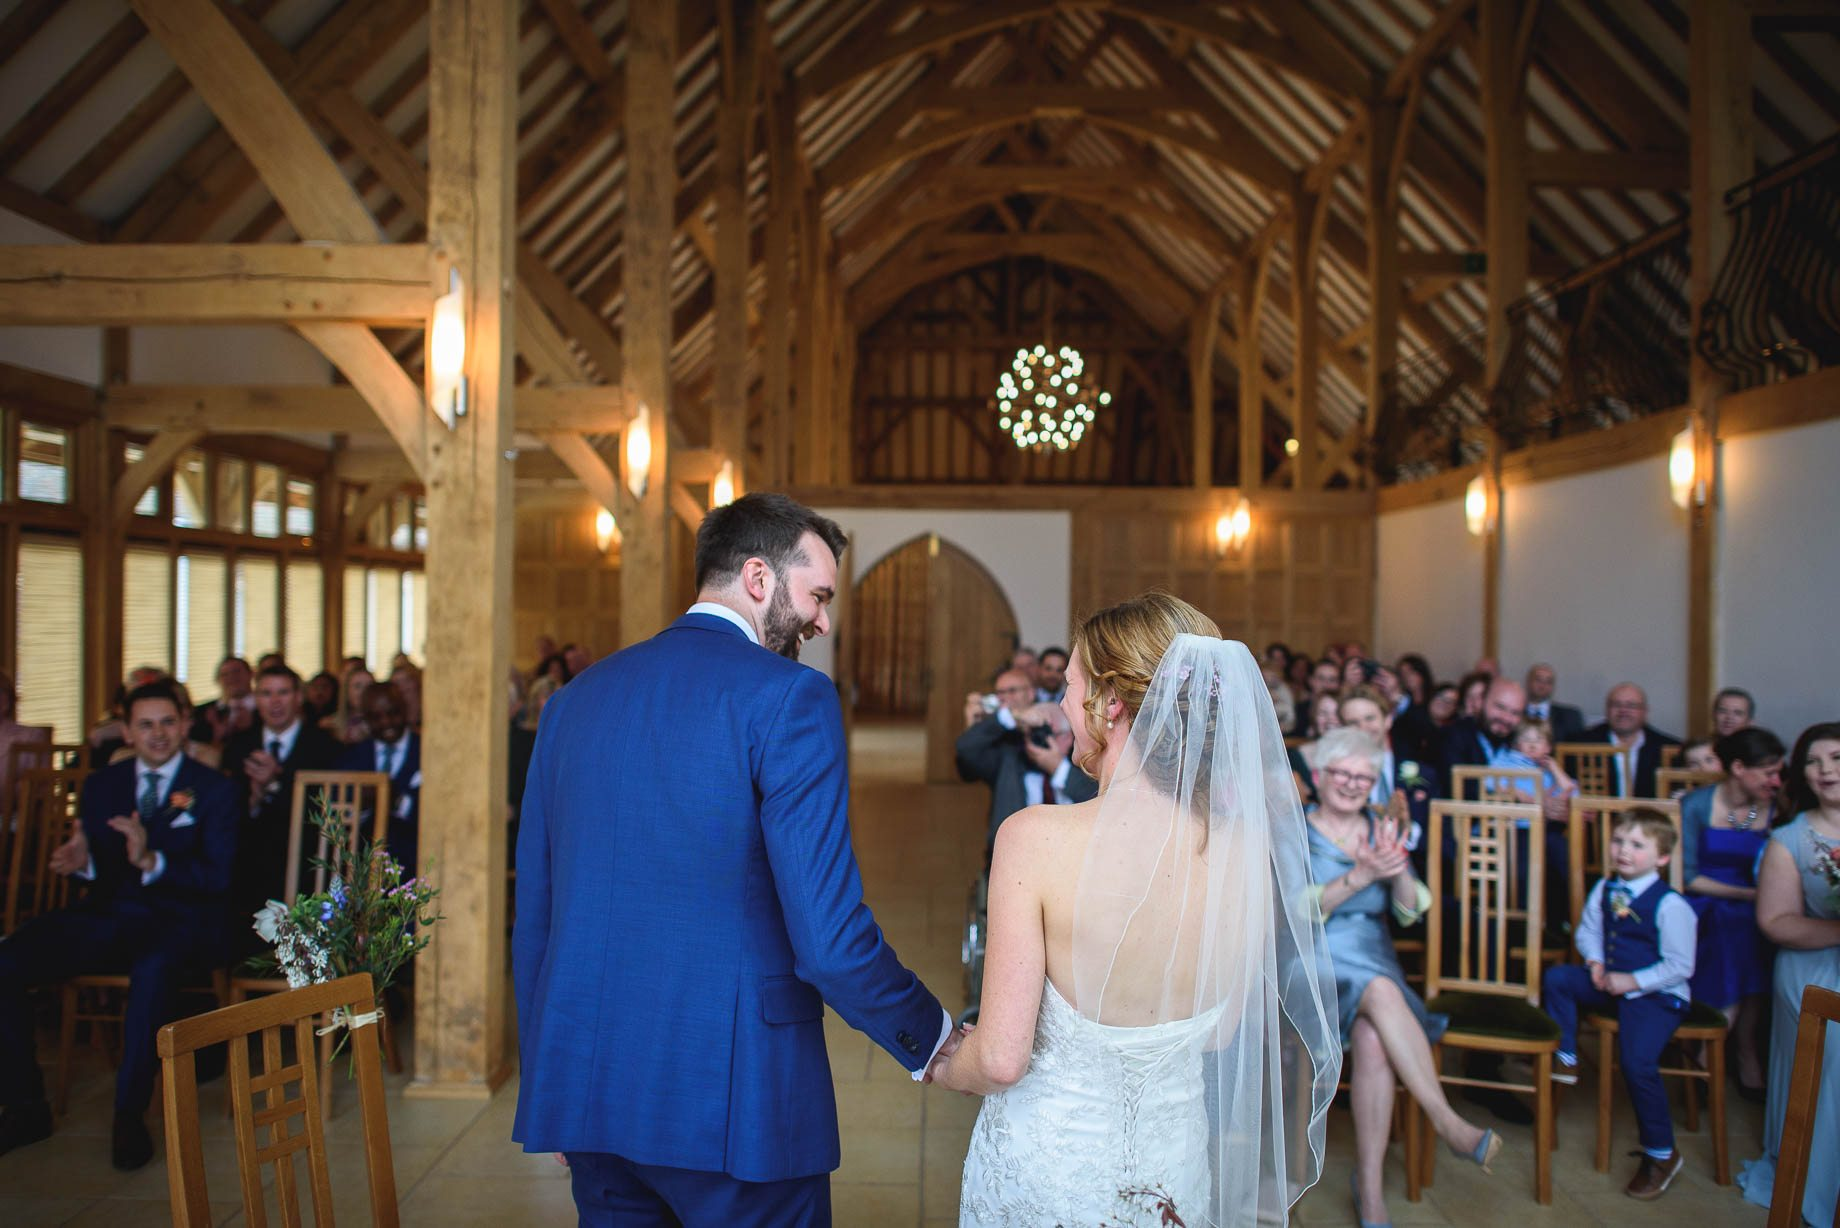 Rivervale Barn wedding photography by Guy Collier - Claire and Simon (60 of 133)